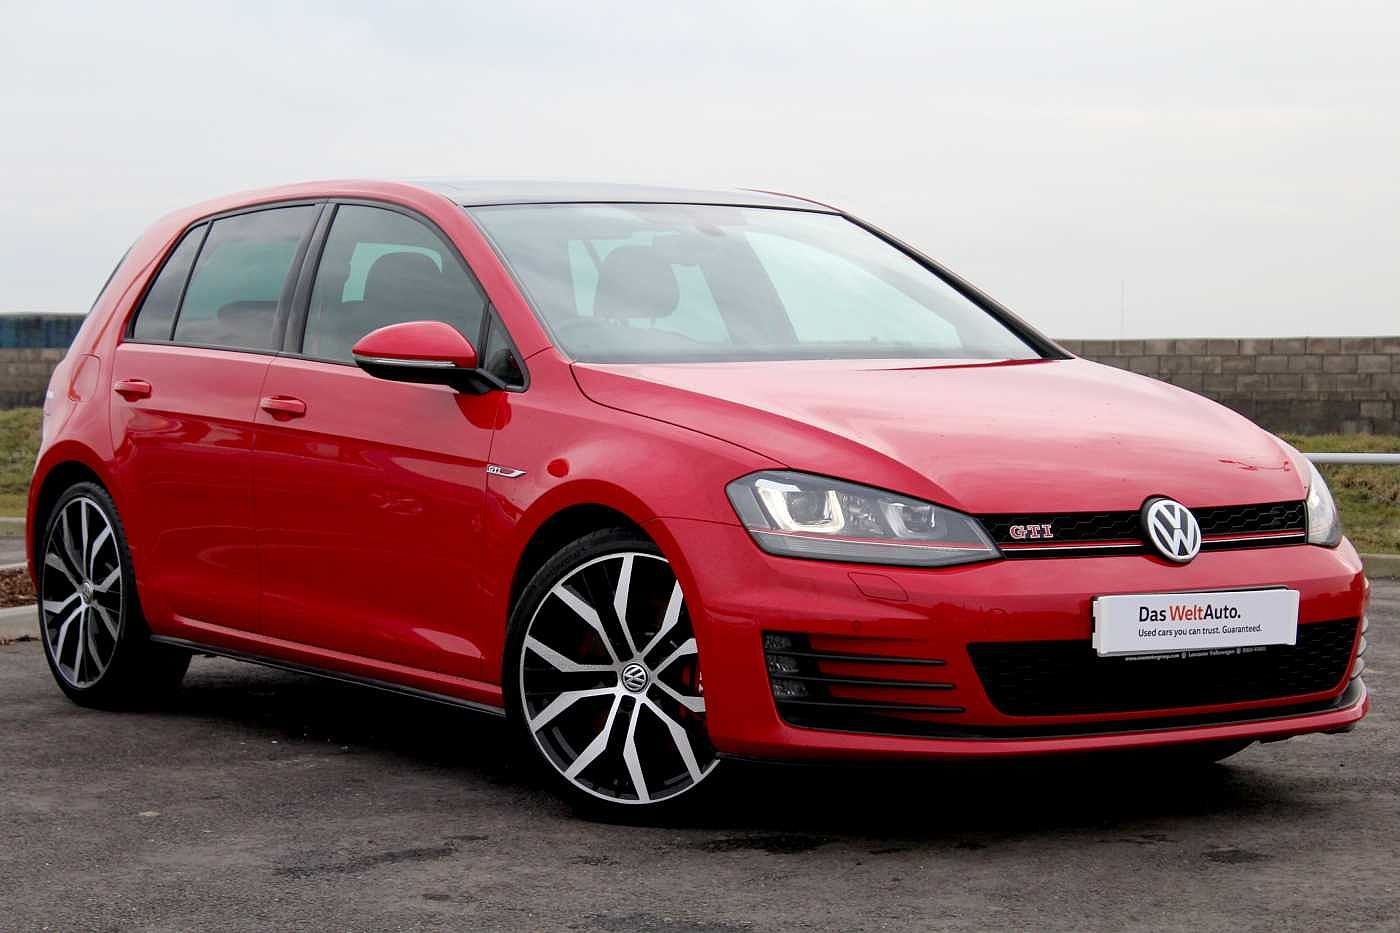 Volkswagen Golf 2.0 TSI GTI 230PS 5Dr